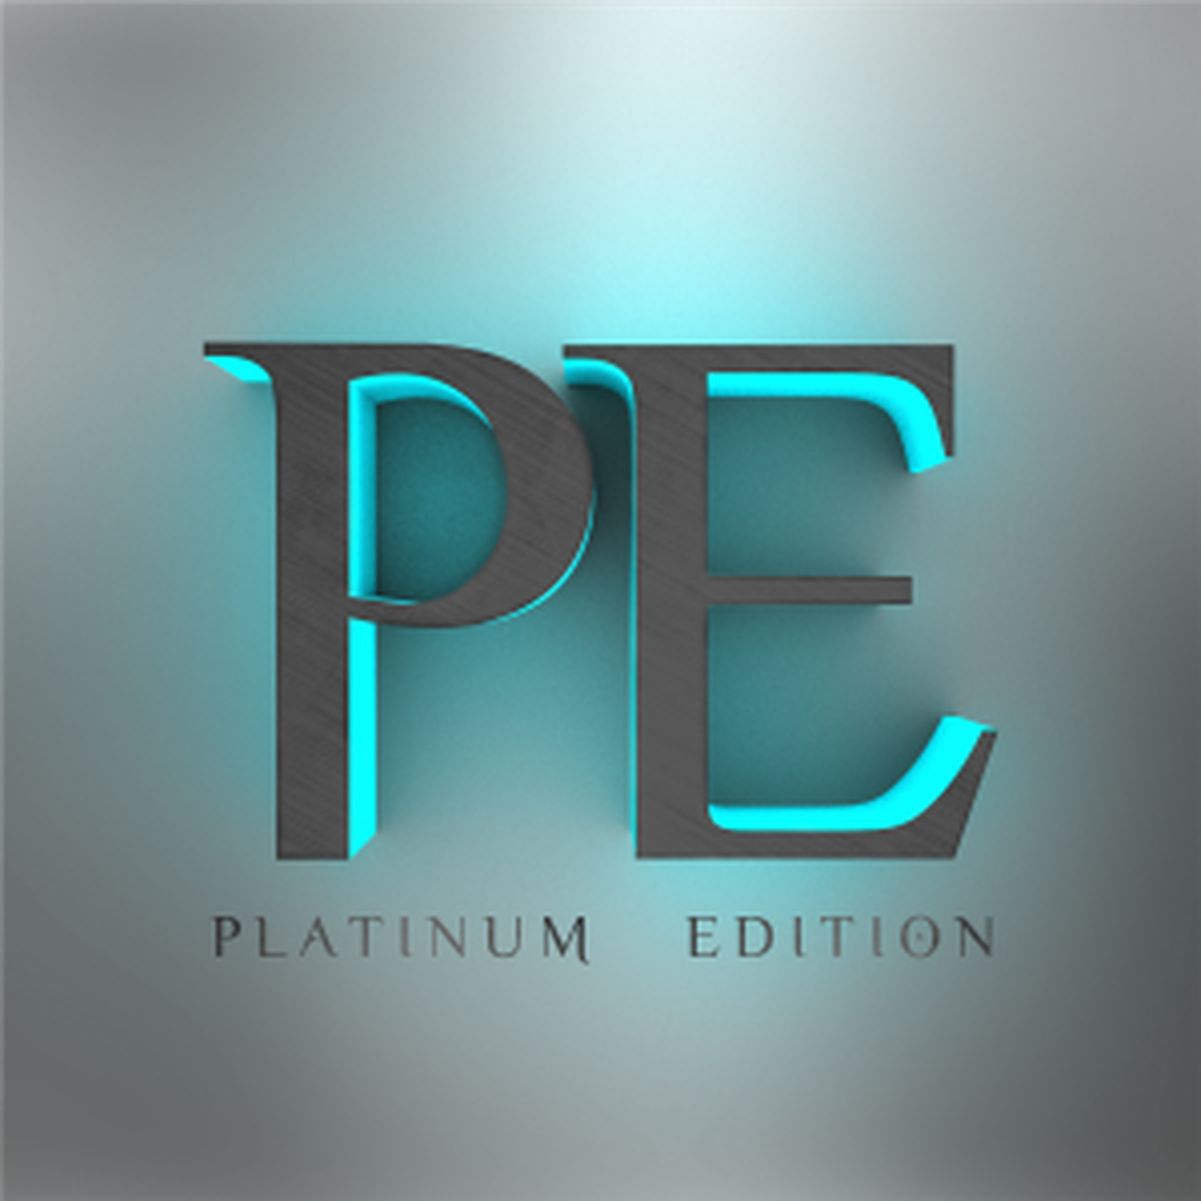 Platinum Edition wiki, Platinum Edition review, Platinum Edition history, Platinum Edition news